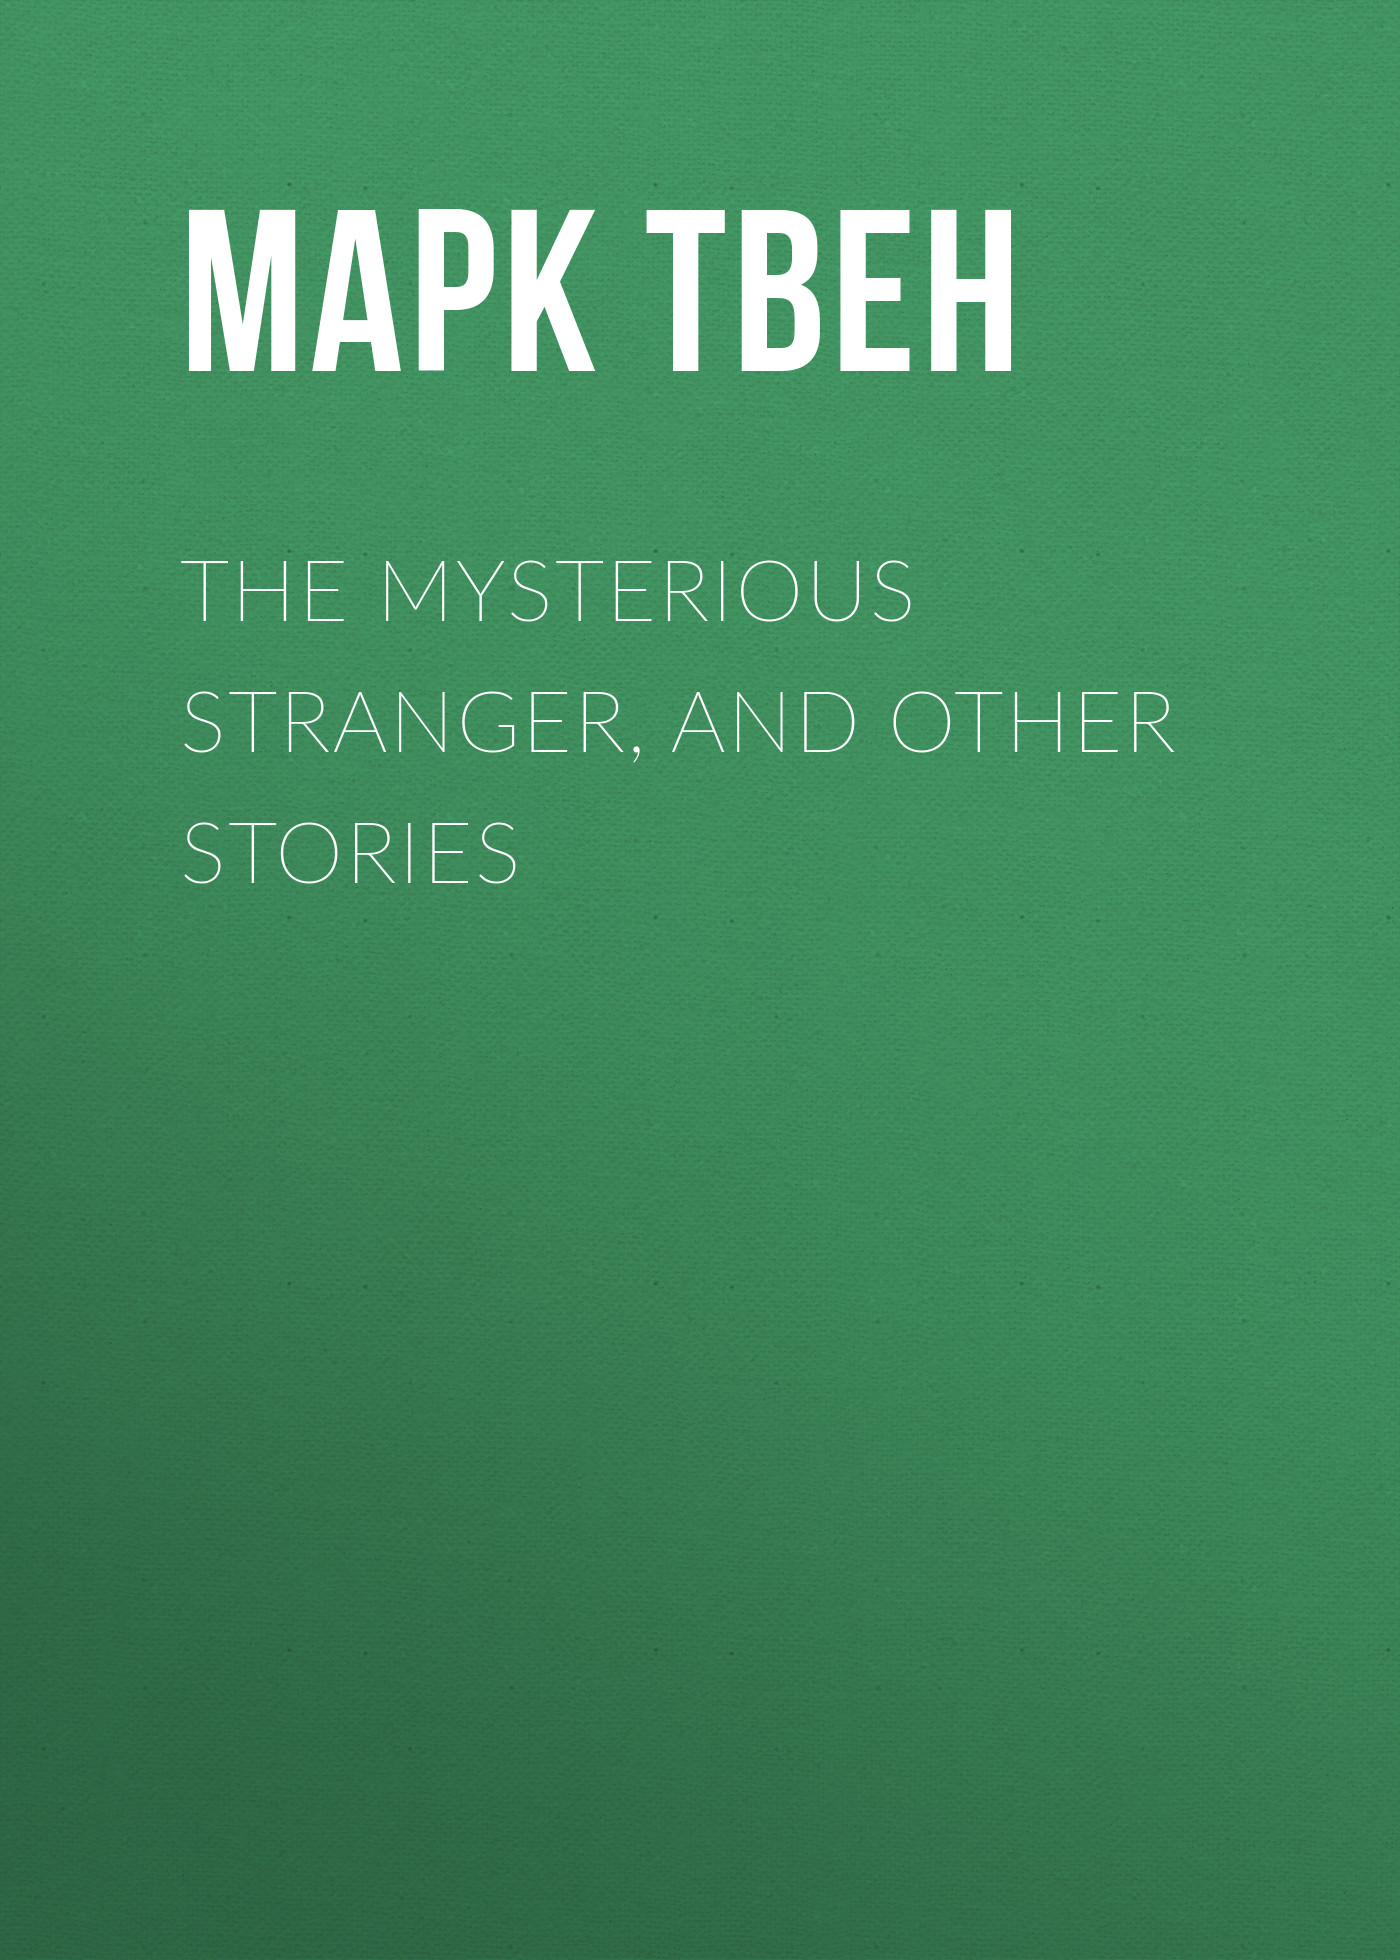 Марк Твен The Mysterious Stranger, and Other Stories марк твен 30 000 dollar bequest and other stories